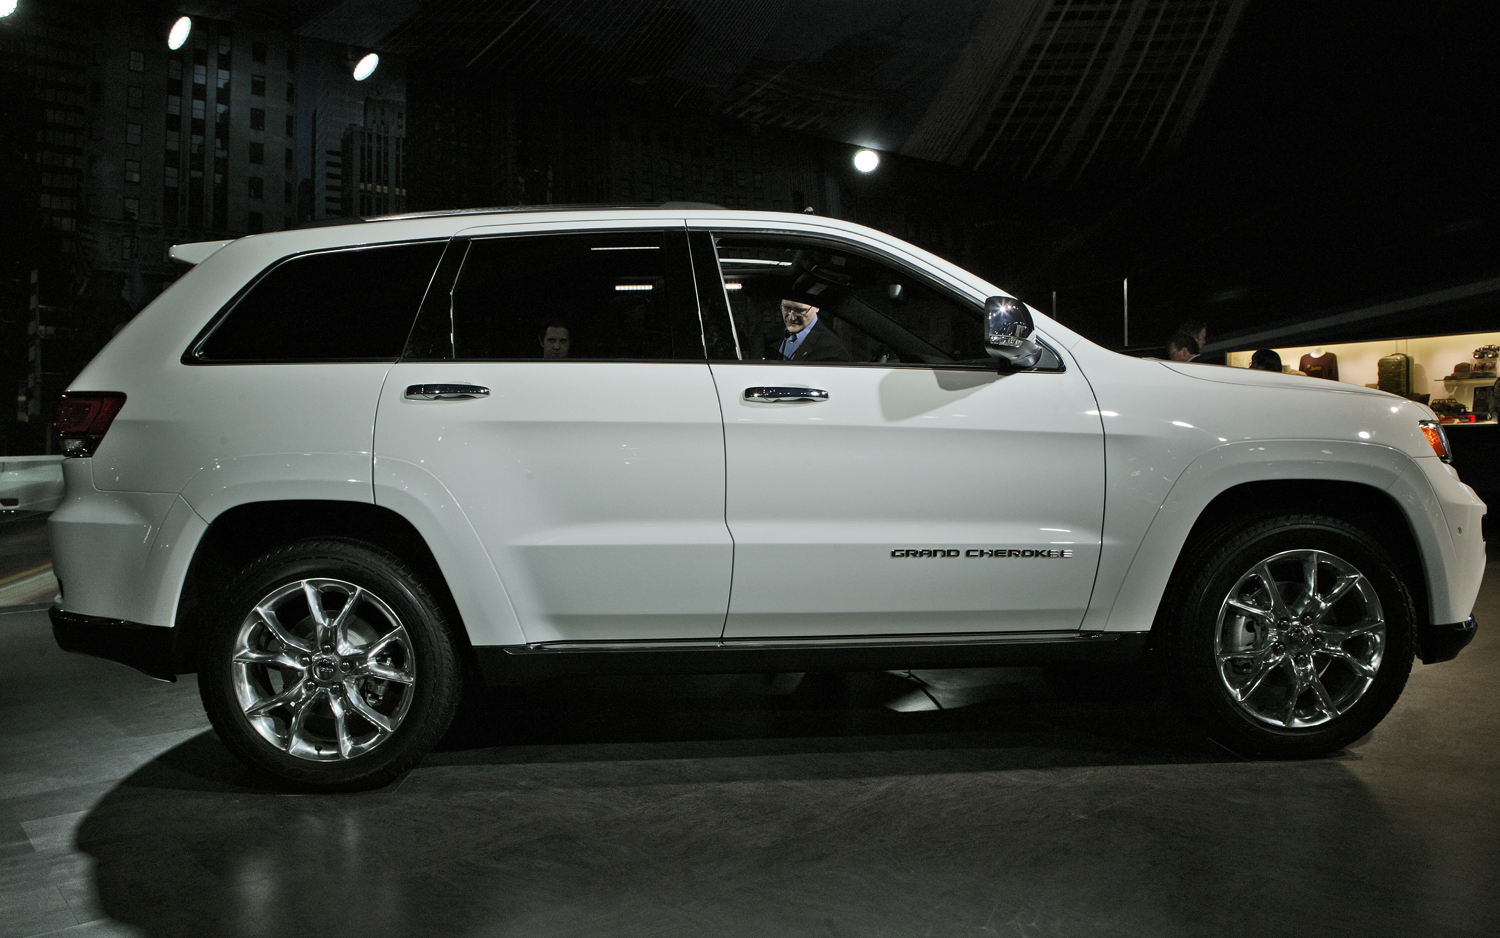 jeep cherokee towing capacity chart autos weblog jeep towing capacity. Cars Review. Best American Auto & Cars Review